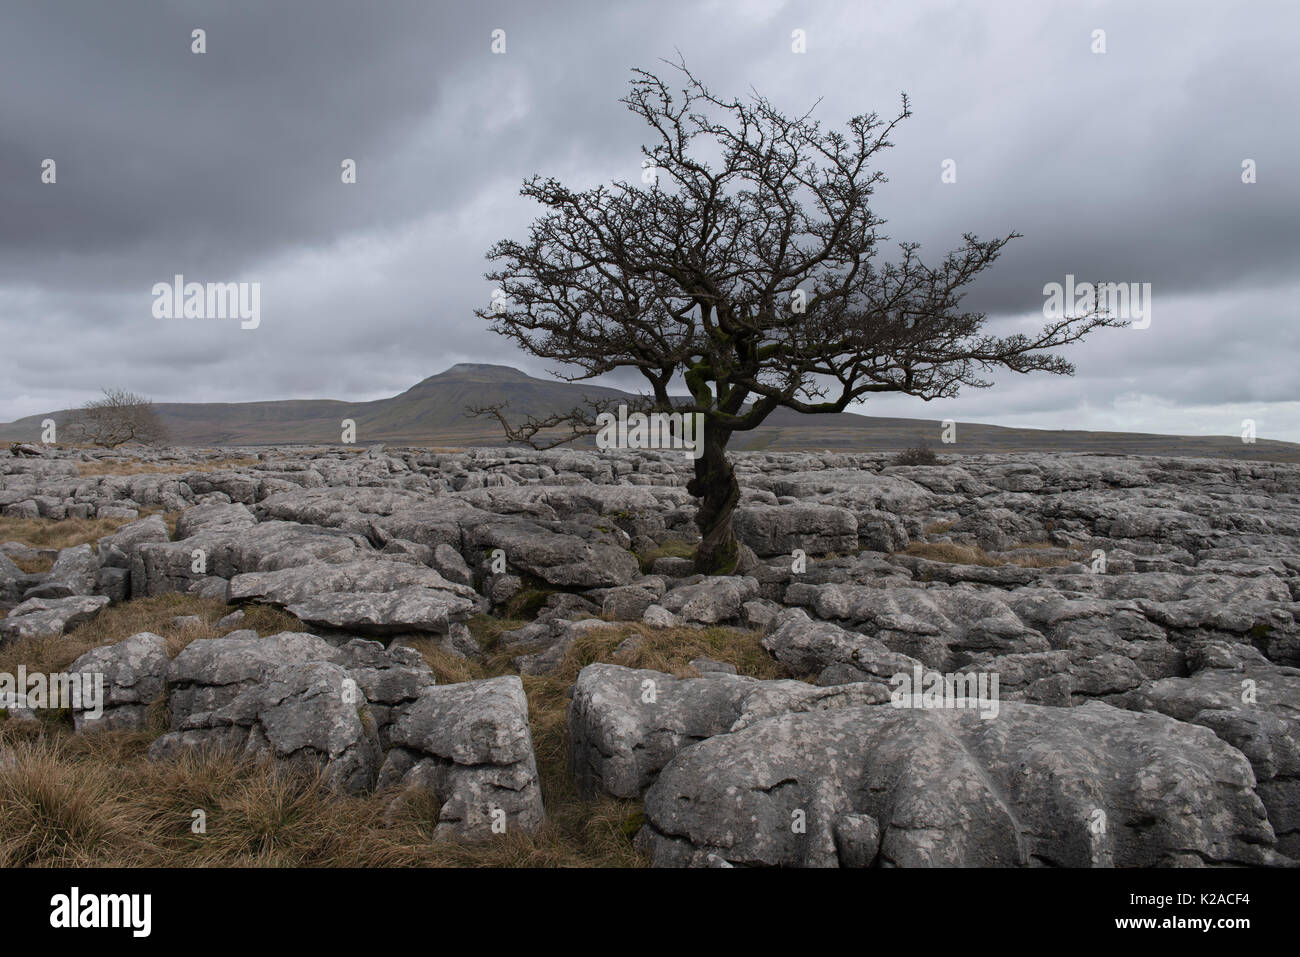 Grey winter day view of one lonely hawthorn tree on Twistleton Scar  limestone pavement, peak of Ingleborough beyond - Yorkshire Dales, England, UK. - Stock Image